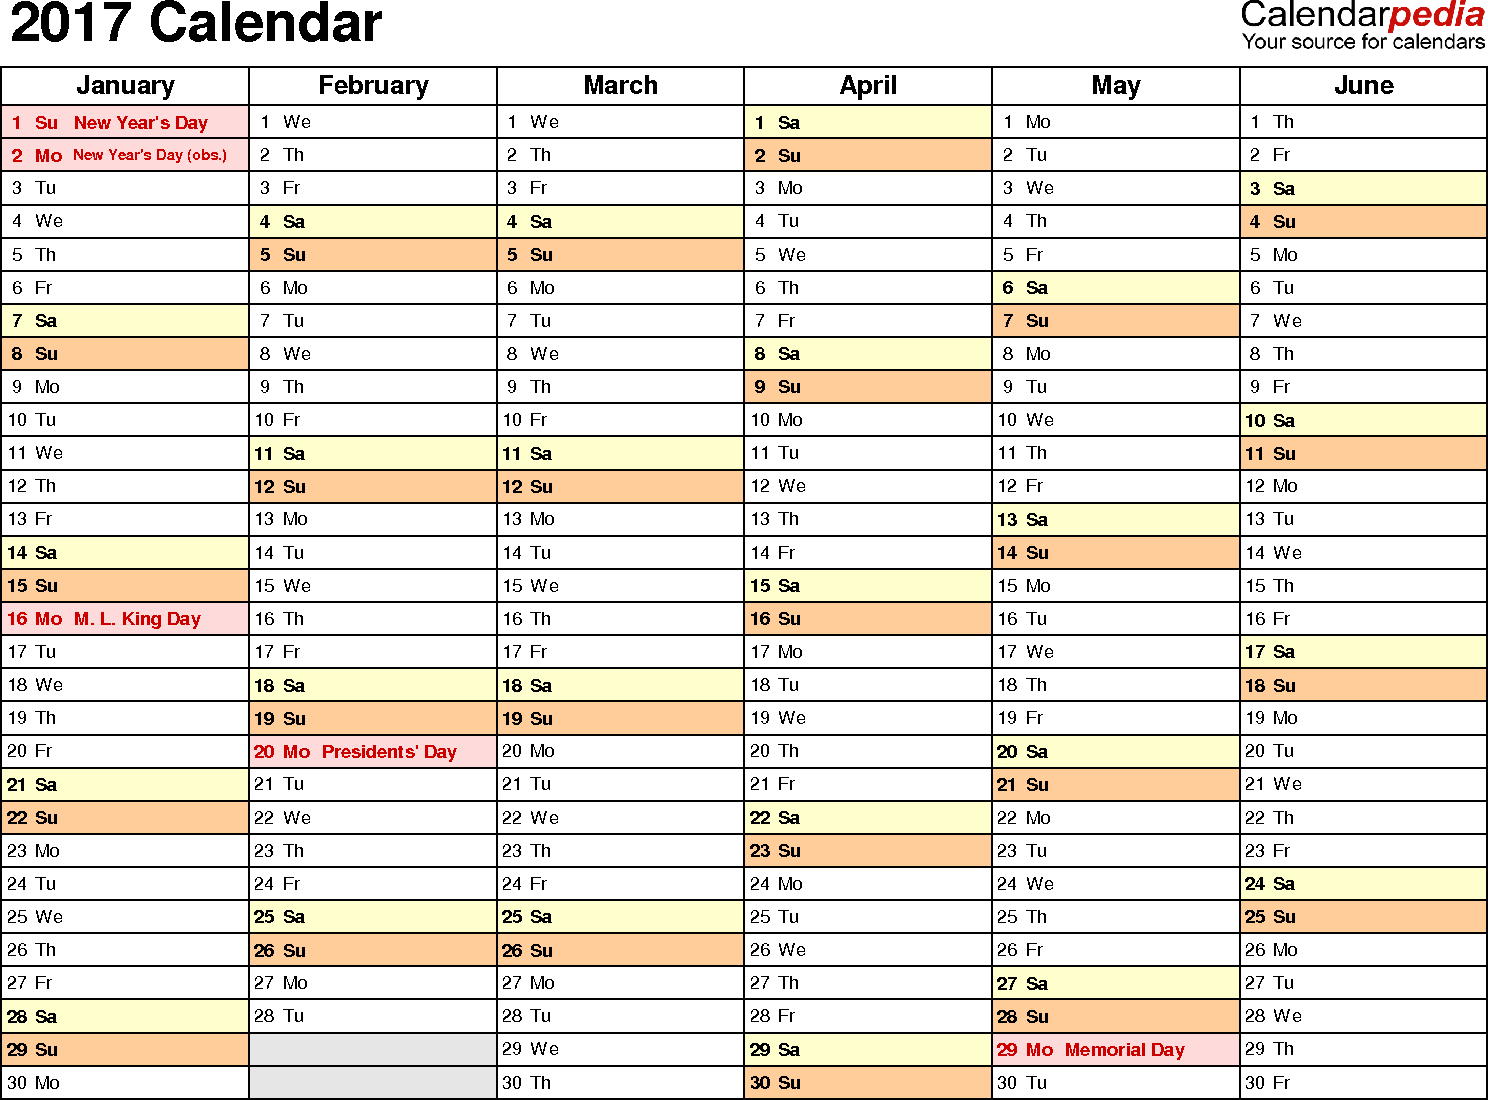 Ediblewildsus  Pleasant  Calendar  Download  Free Printable Excel Templates Xls With Interesting Template   Calendar For Excel Months Horizontally  Pages Landscape Orientation With Delectable How To Merge Excel Documents Also Convert Hours And Minutes To Decimal In Excel In Addition Definition Of Range In Excel And Excel Freeze Columns And Rows As Well As Creating A Pareto Chart In Excel Additionally Excel Massage San Ramon From Calendarpediacom With Ediblewildsus  Interesting  Calendar  Download  Free Printable Excel Templates Xls With Delectable Template   Calendar For Excel Months Horizontally  Pages Landscape Orientation And Pleasant How To Merge Excel Documents Also Convert Hours And Minutes To Decimal In Excel In Addition Definition Of Range In Excel From Calendarpediacom